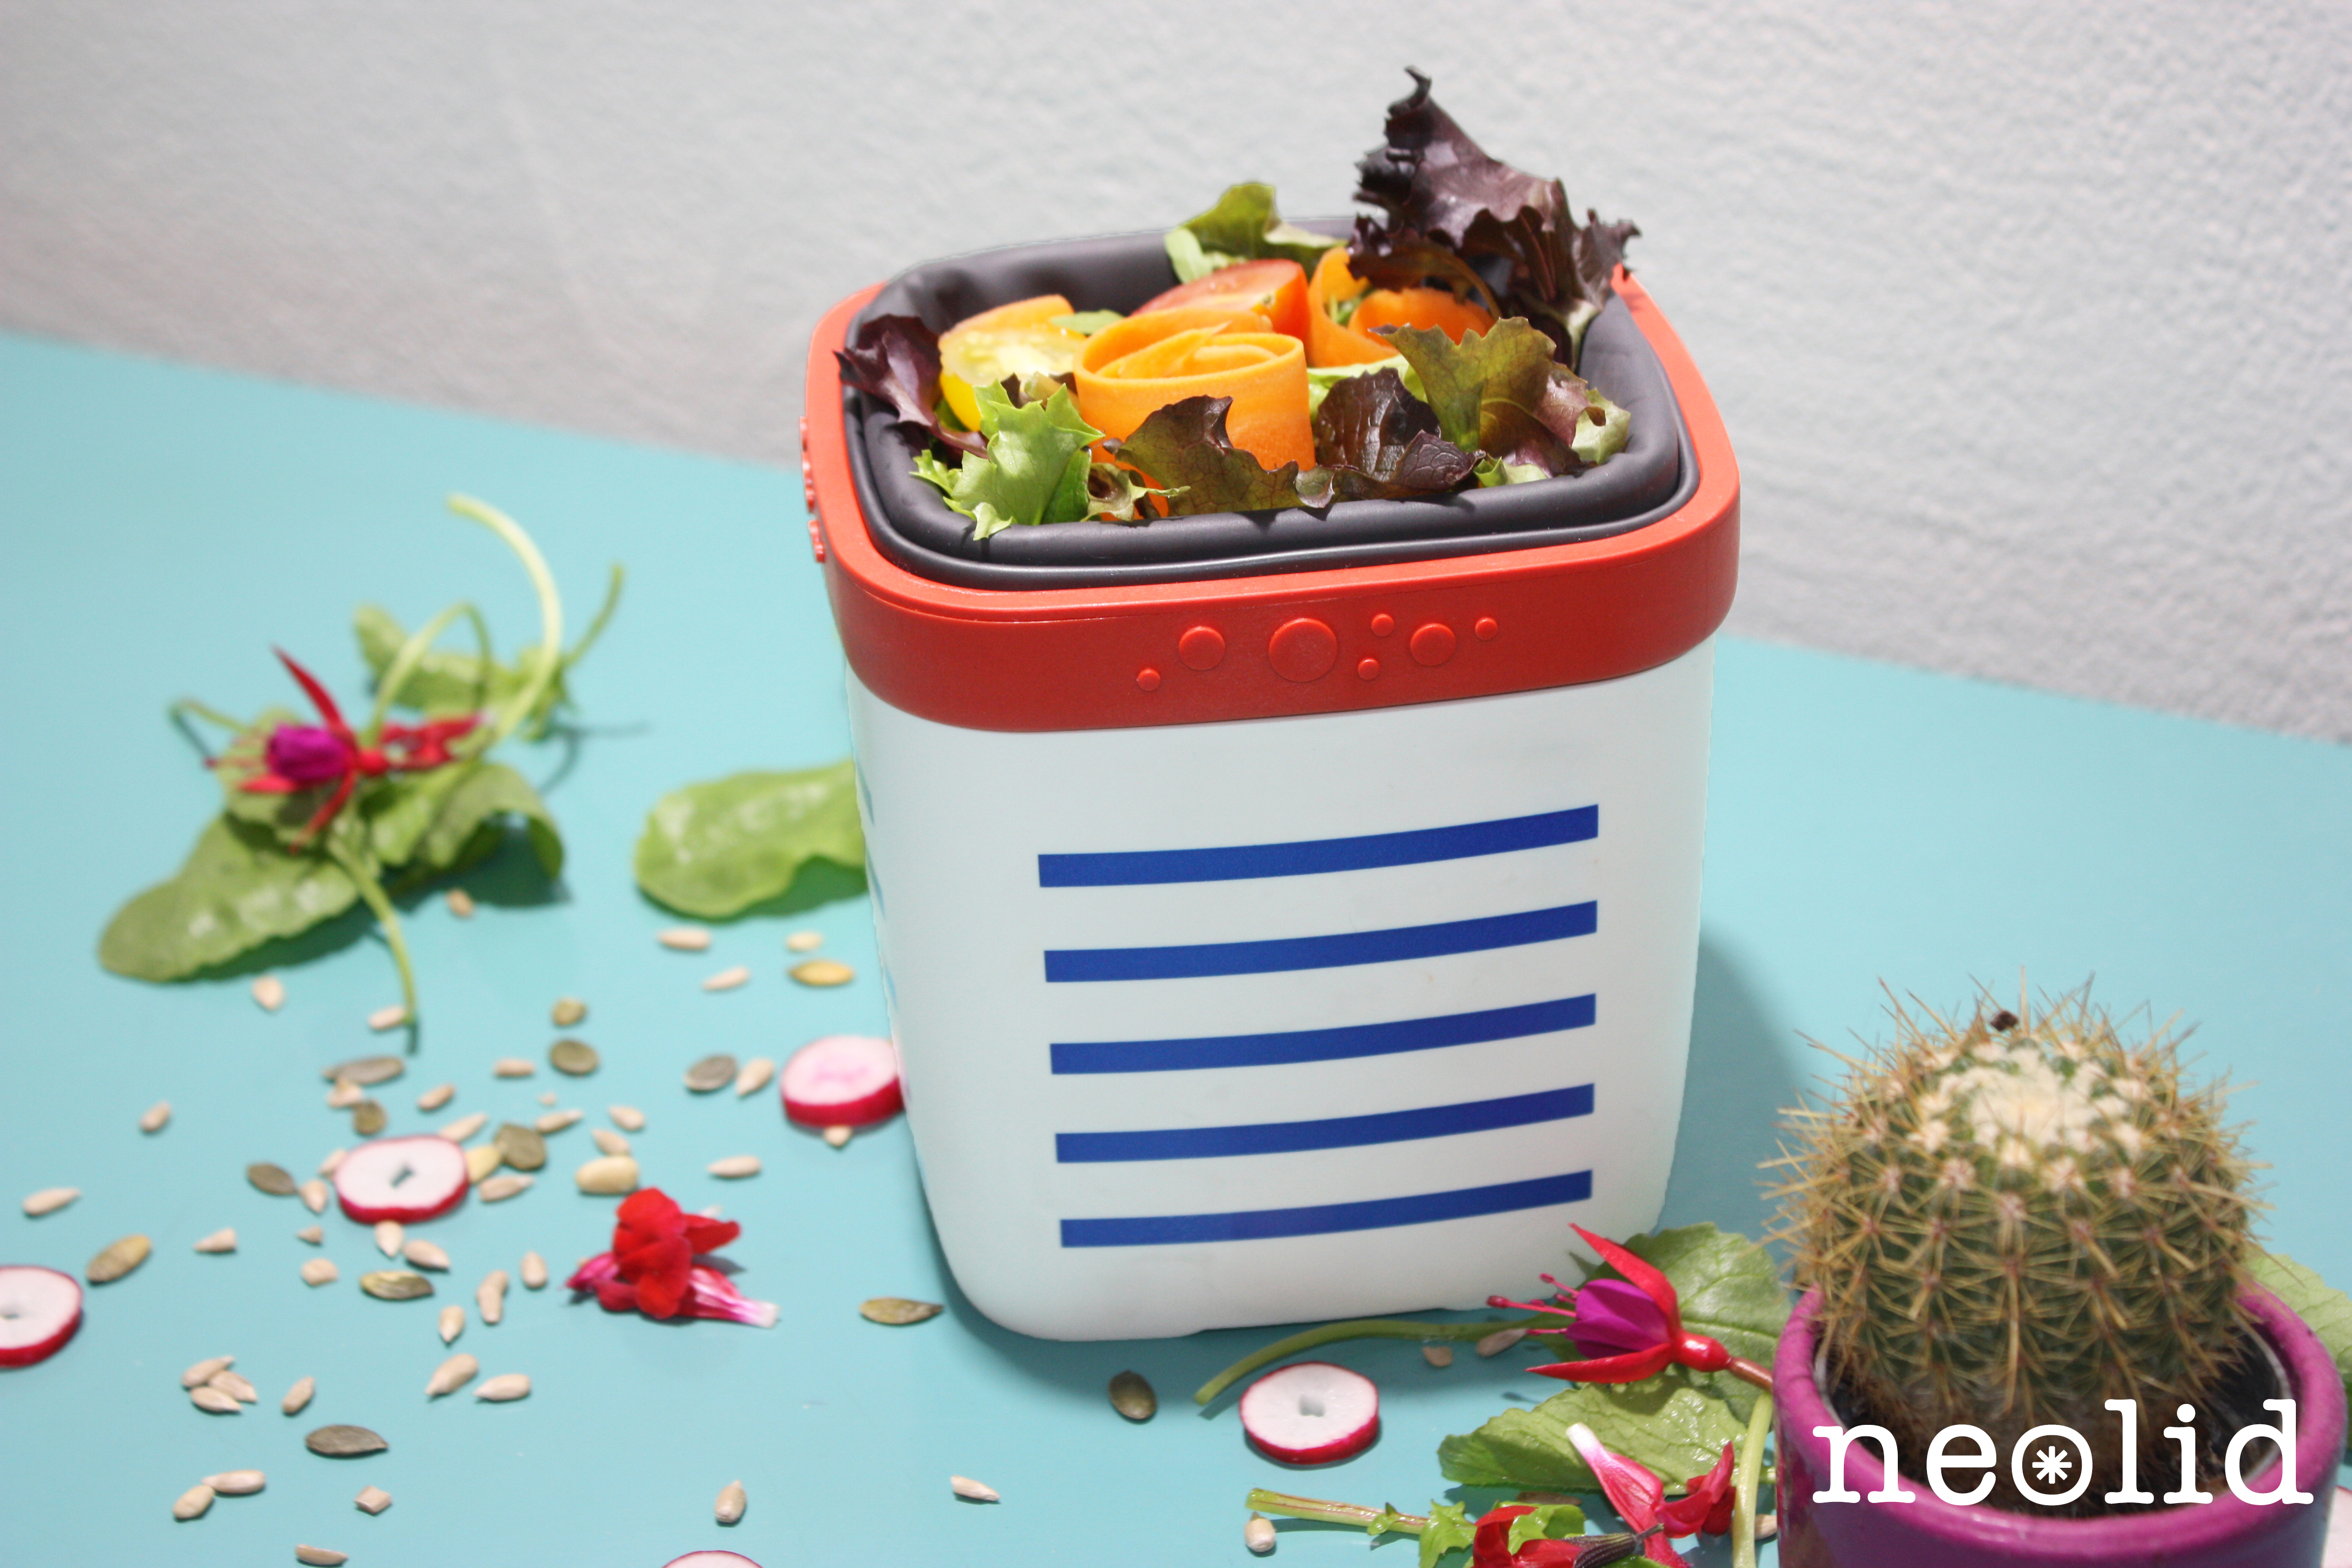 lunch box, lunchbox isotherme, lunchbox, boite repas, lunchbox thermos, boite repas thermos, lunchbox étanche, lunch box étanche, boite repas étanche, bento, bento thermos, bento isotherme, bento étanche